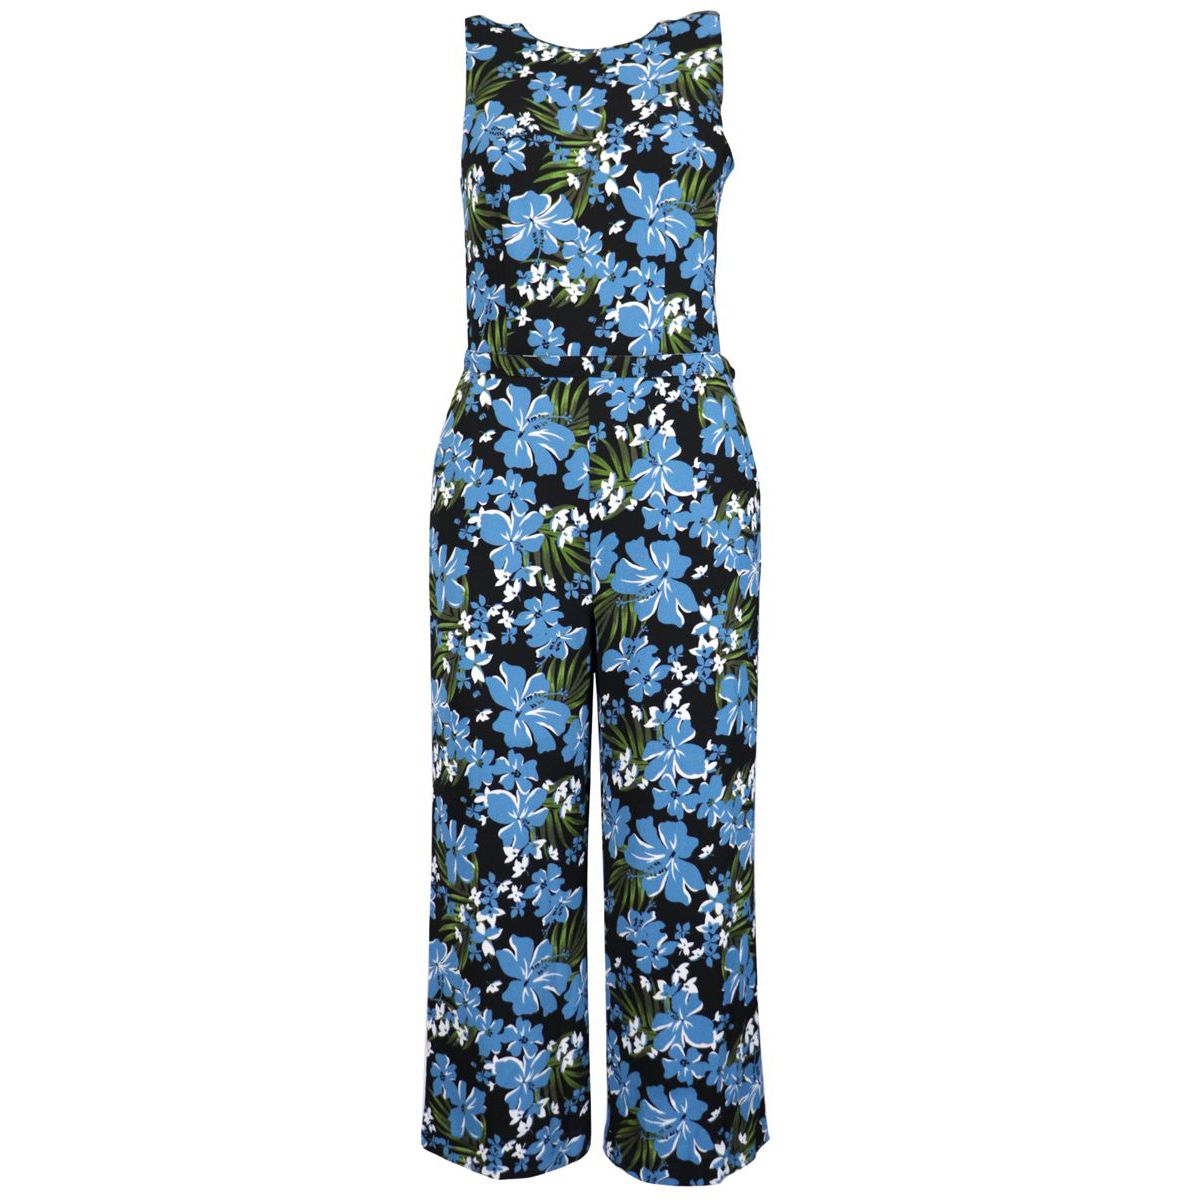 Viscose jumpsuit with flower print Black / blue Michael Kors